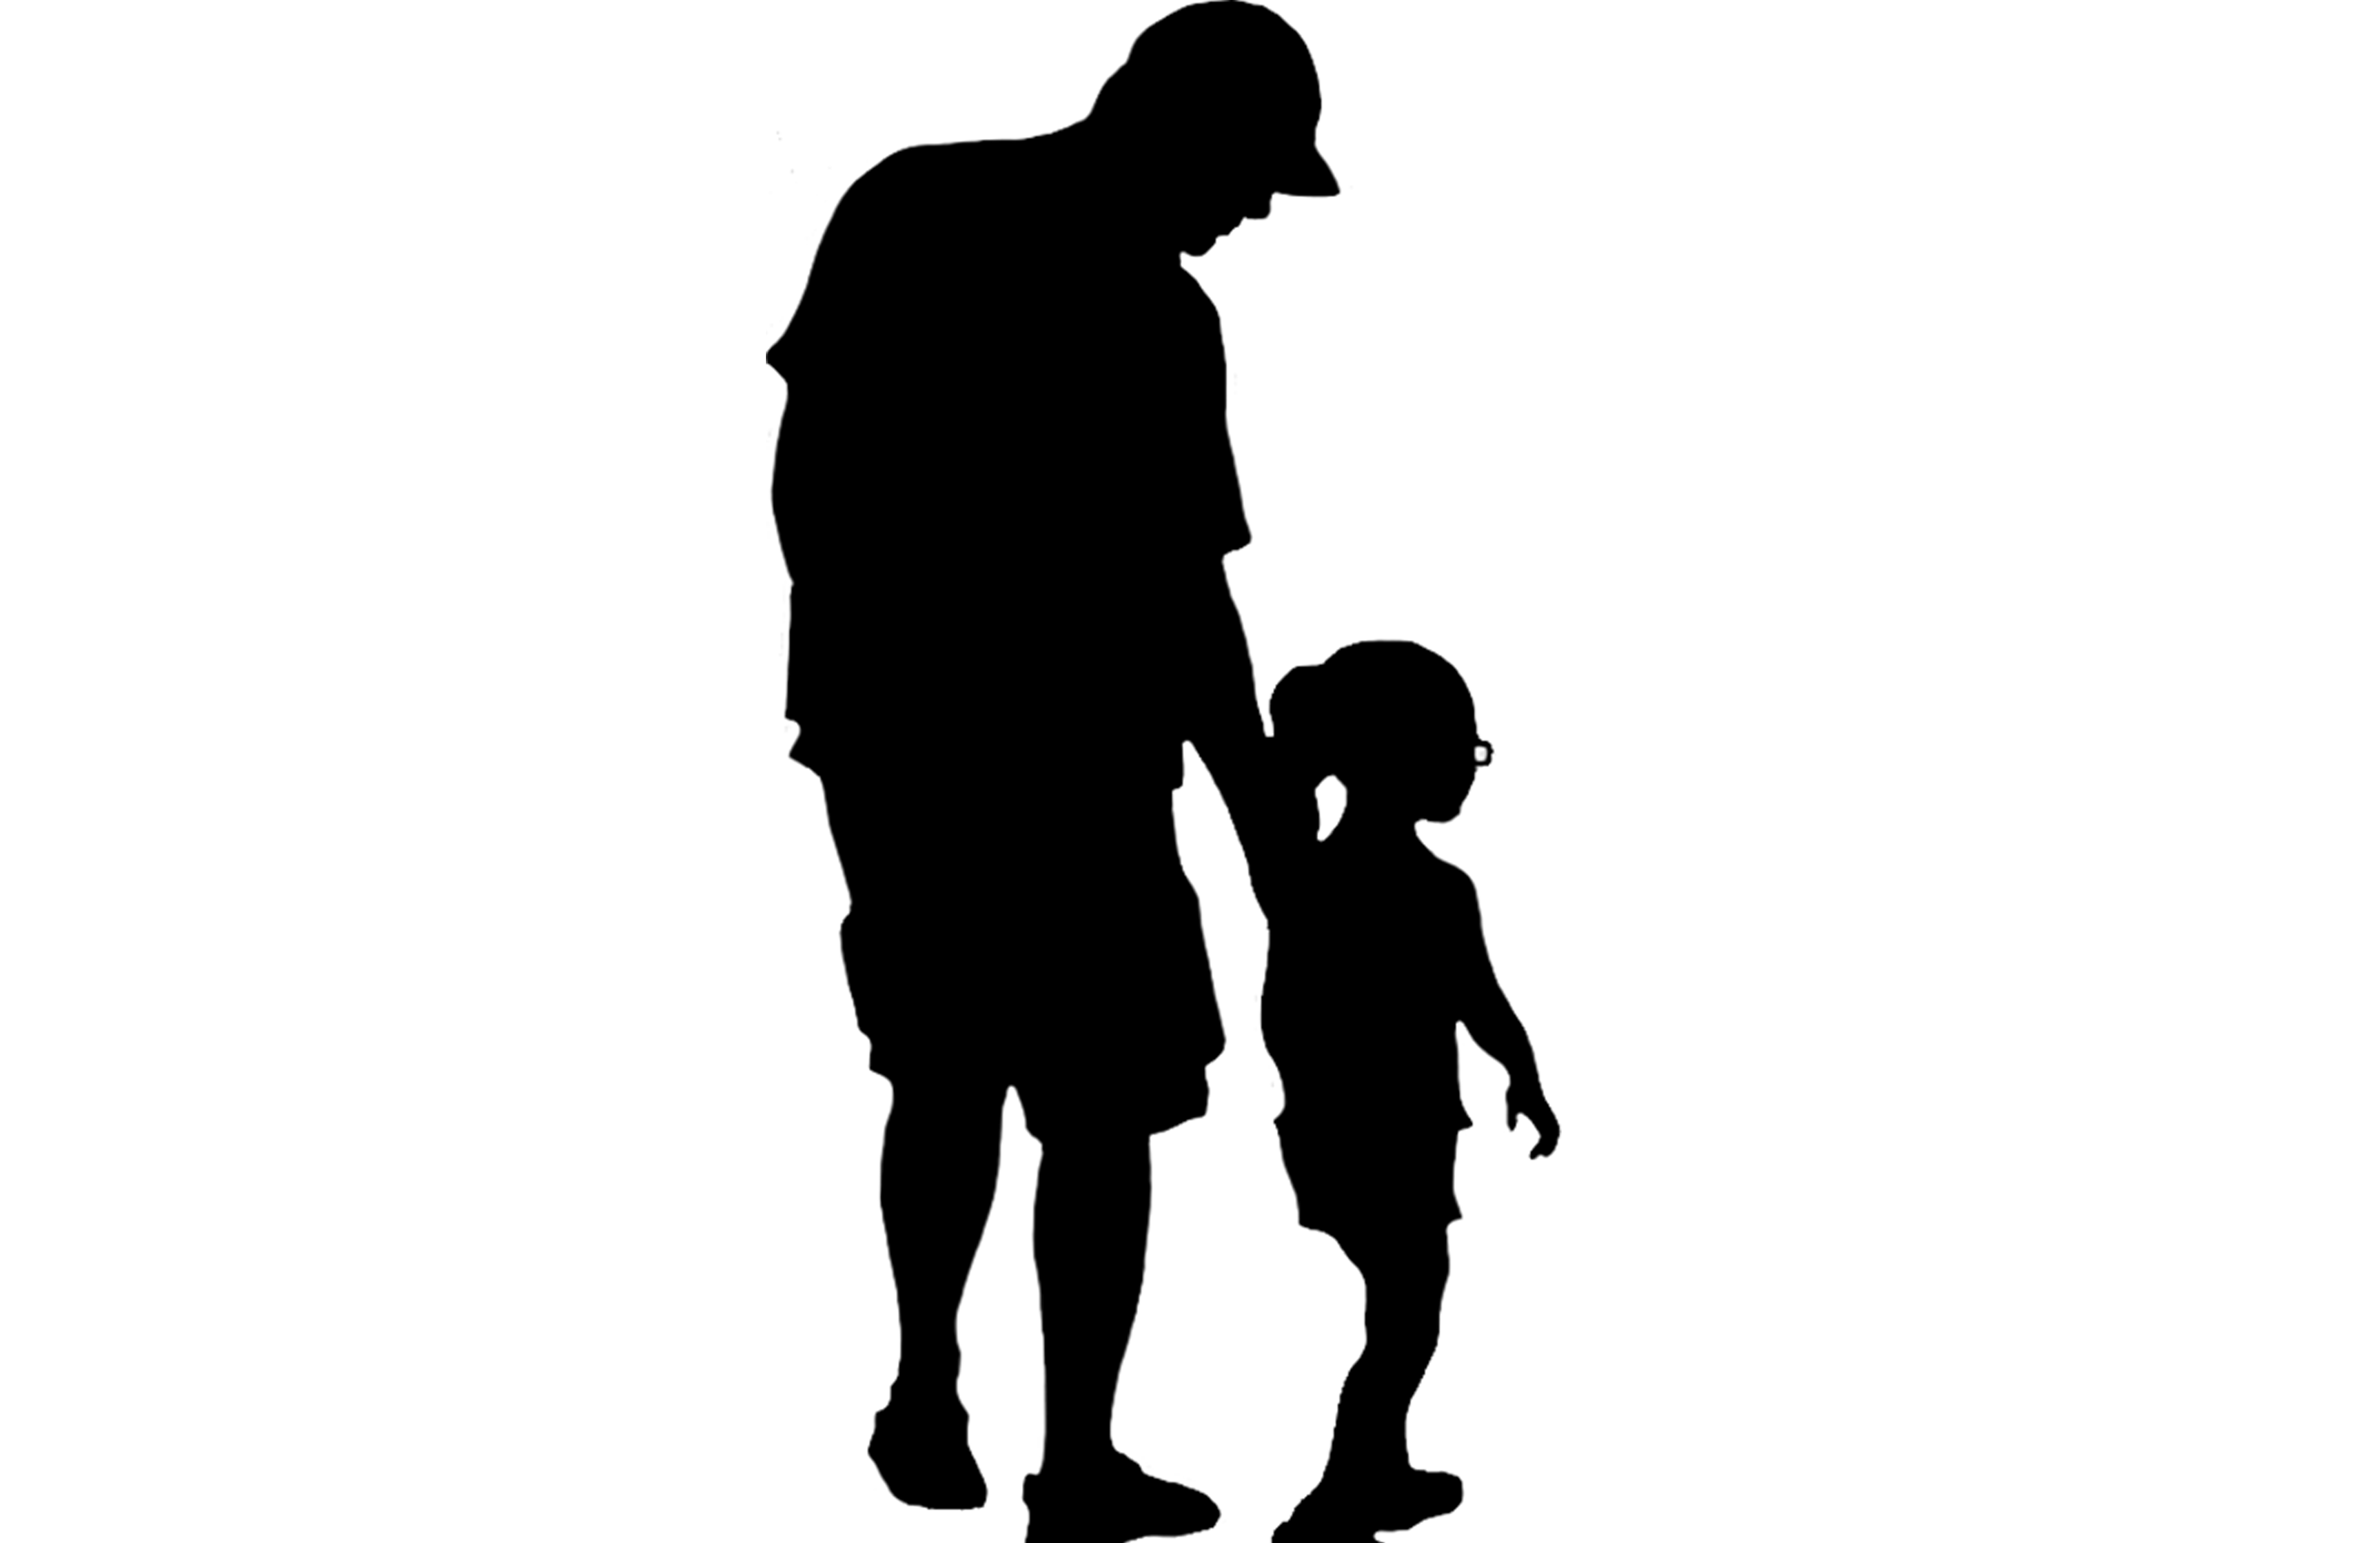 father silhouette quickly and easily create a fun and unique design on walls silhouette father